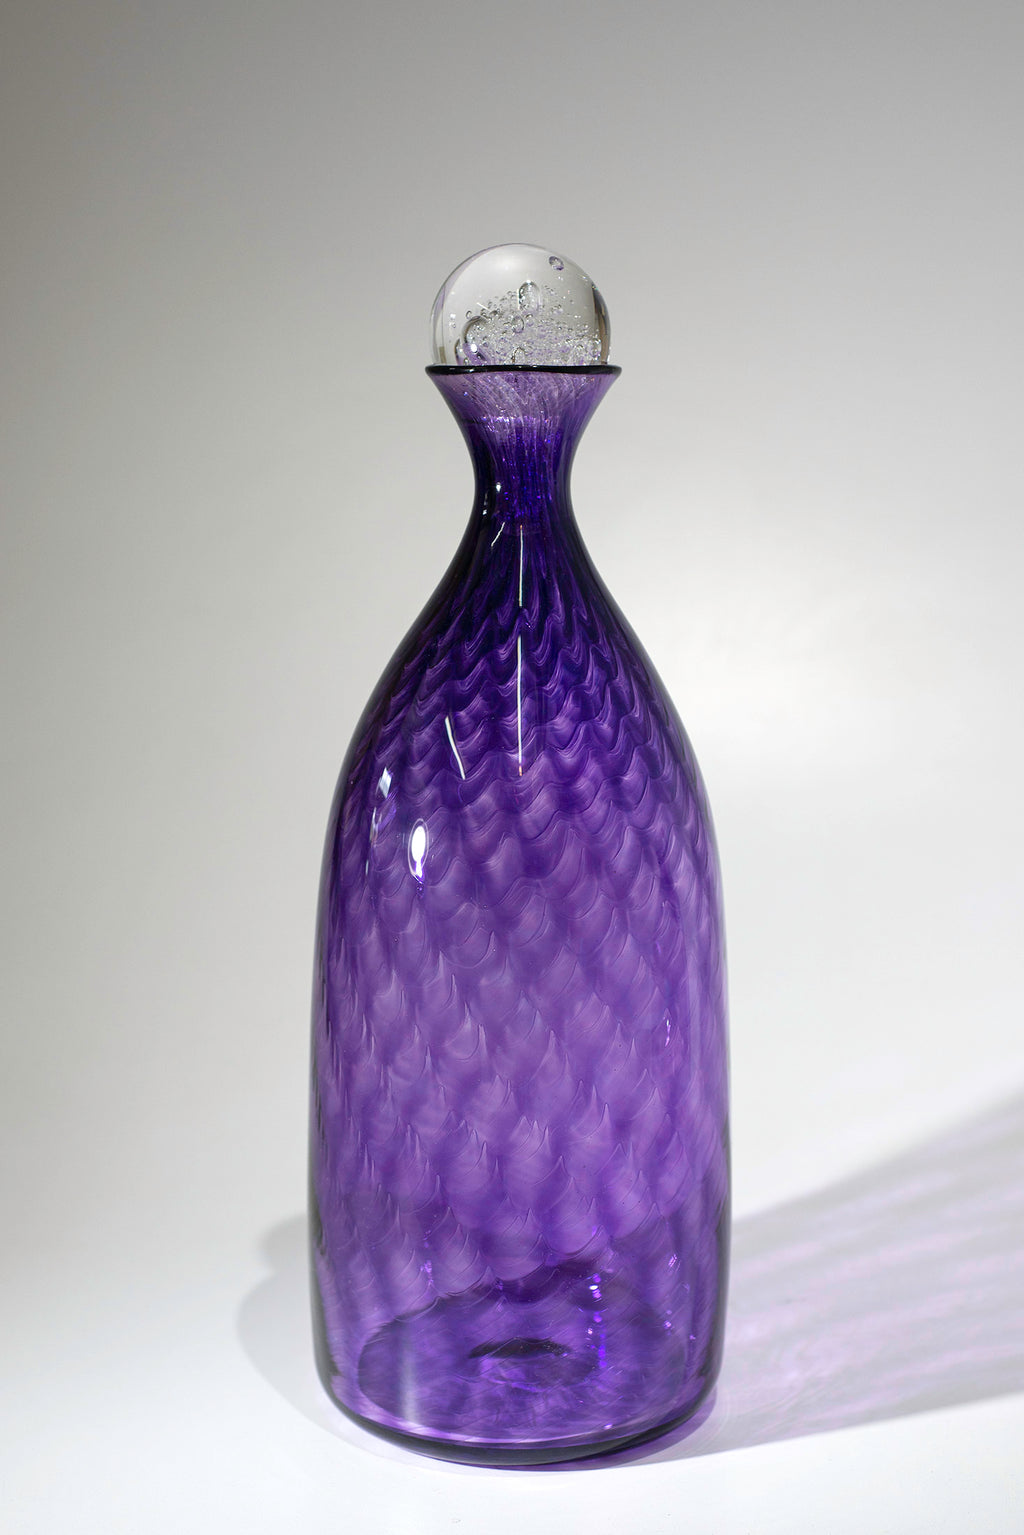 Woven Bottle with Stopper - #200621-12